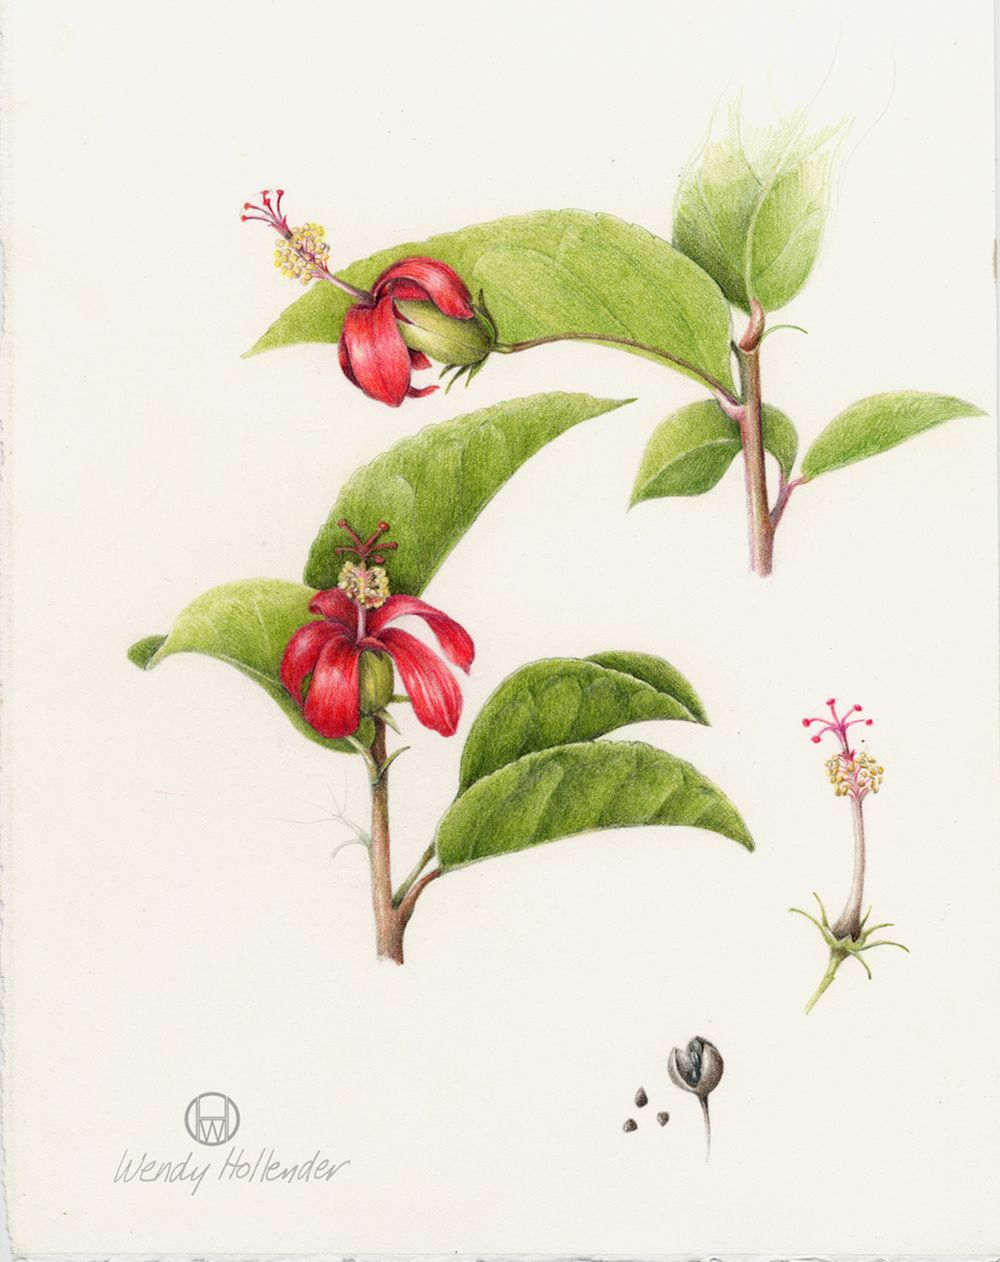 Hibiscus Clay's. From the collection of botanical illustrations of flowers by Wendy Hollender.